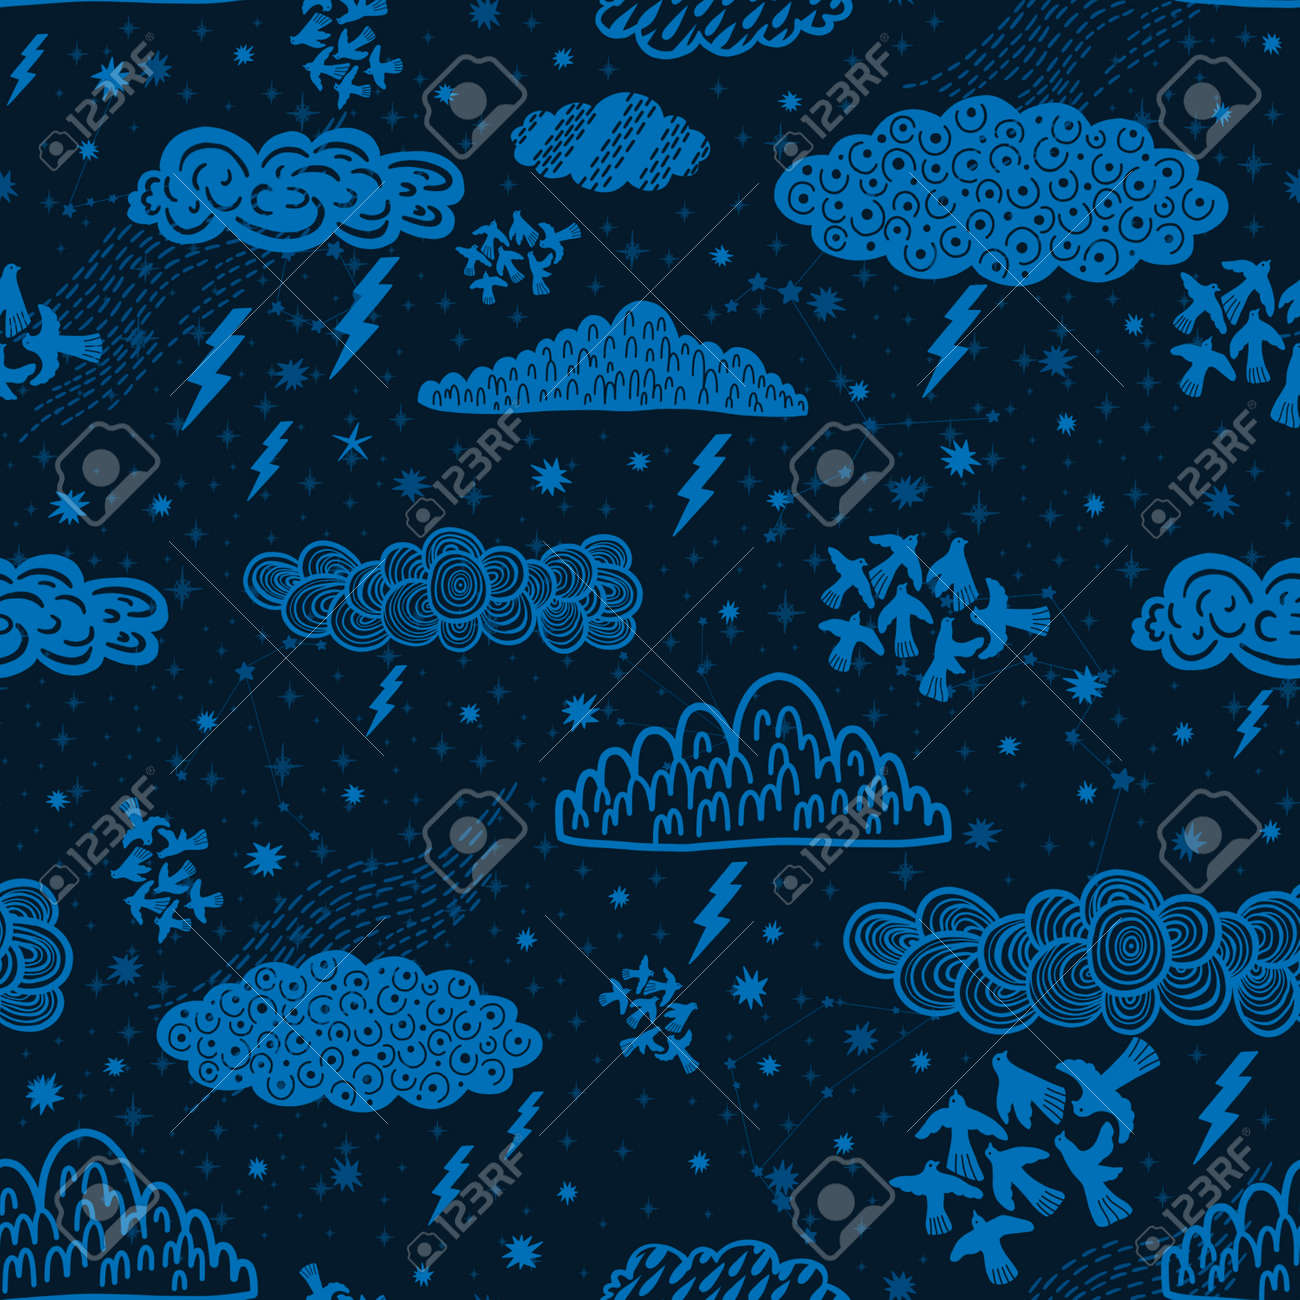 Seamless pattern cloud abstract symbol space.Astrology background doodle style. - 170424875